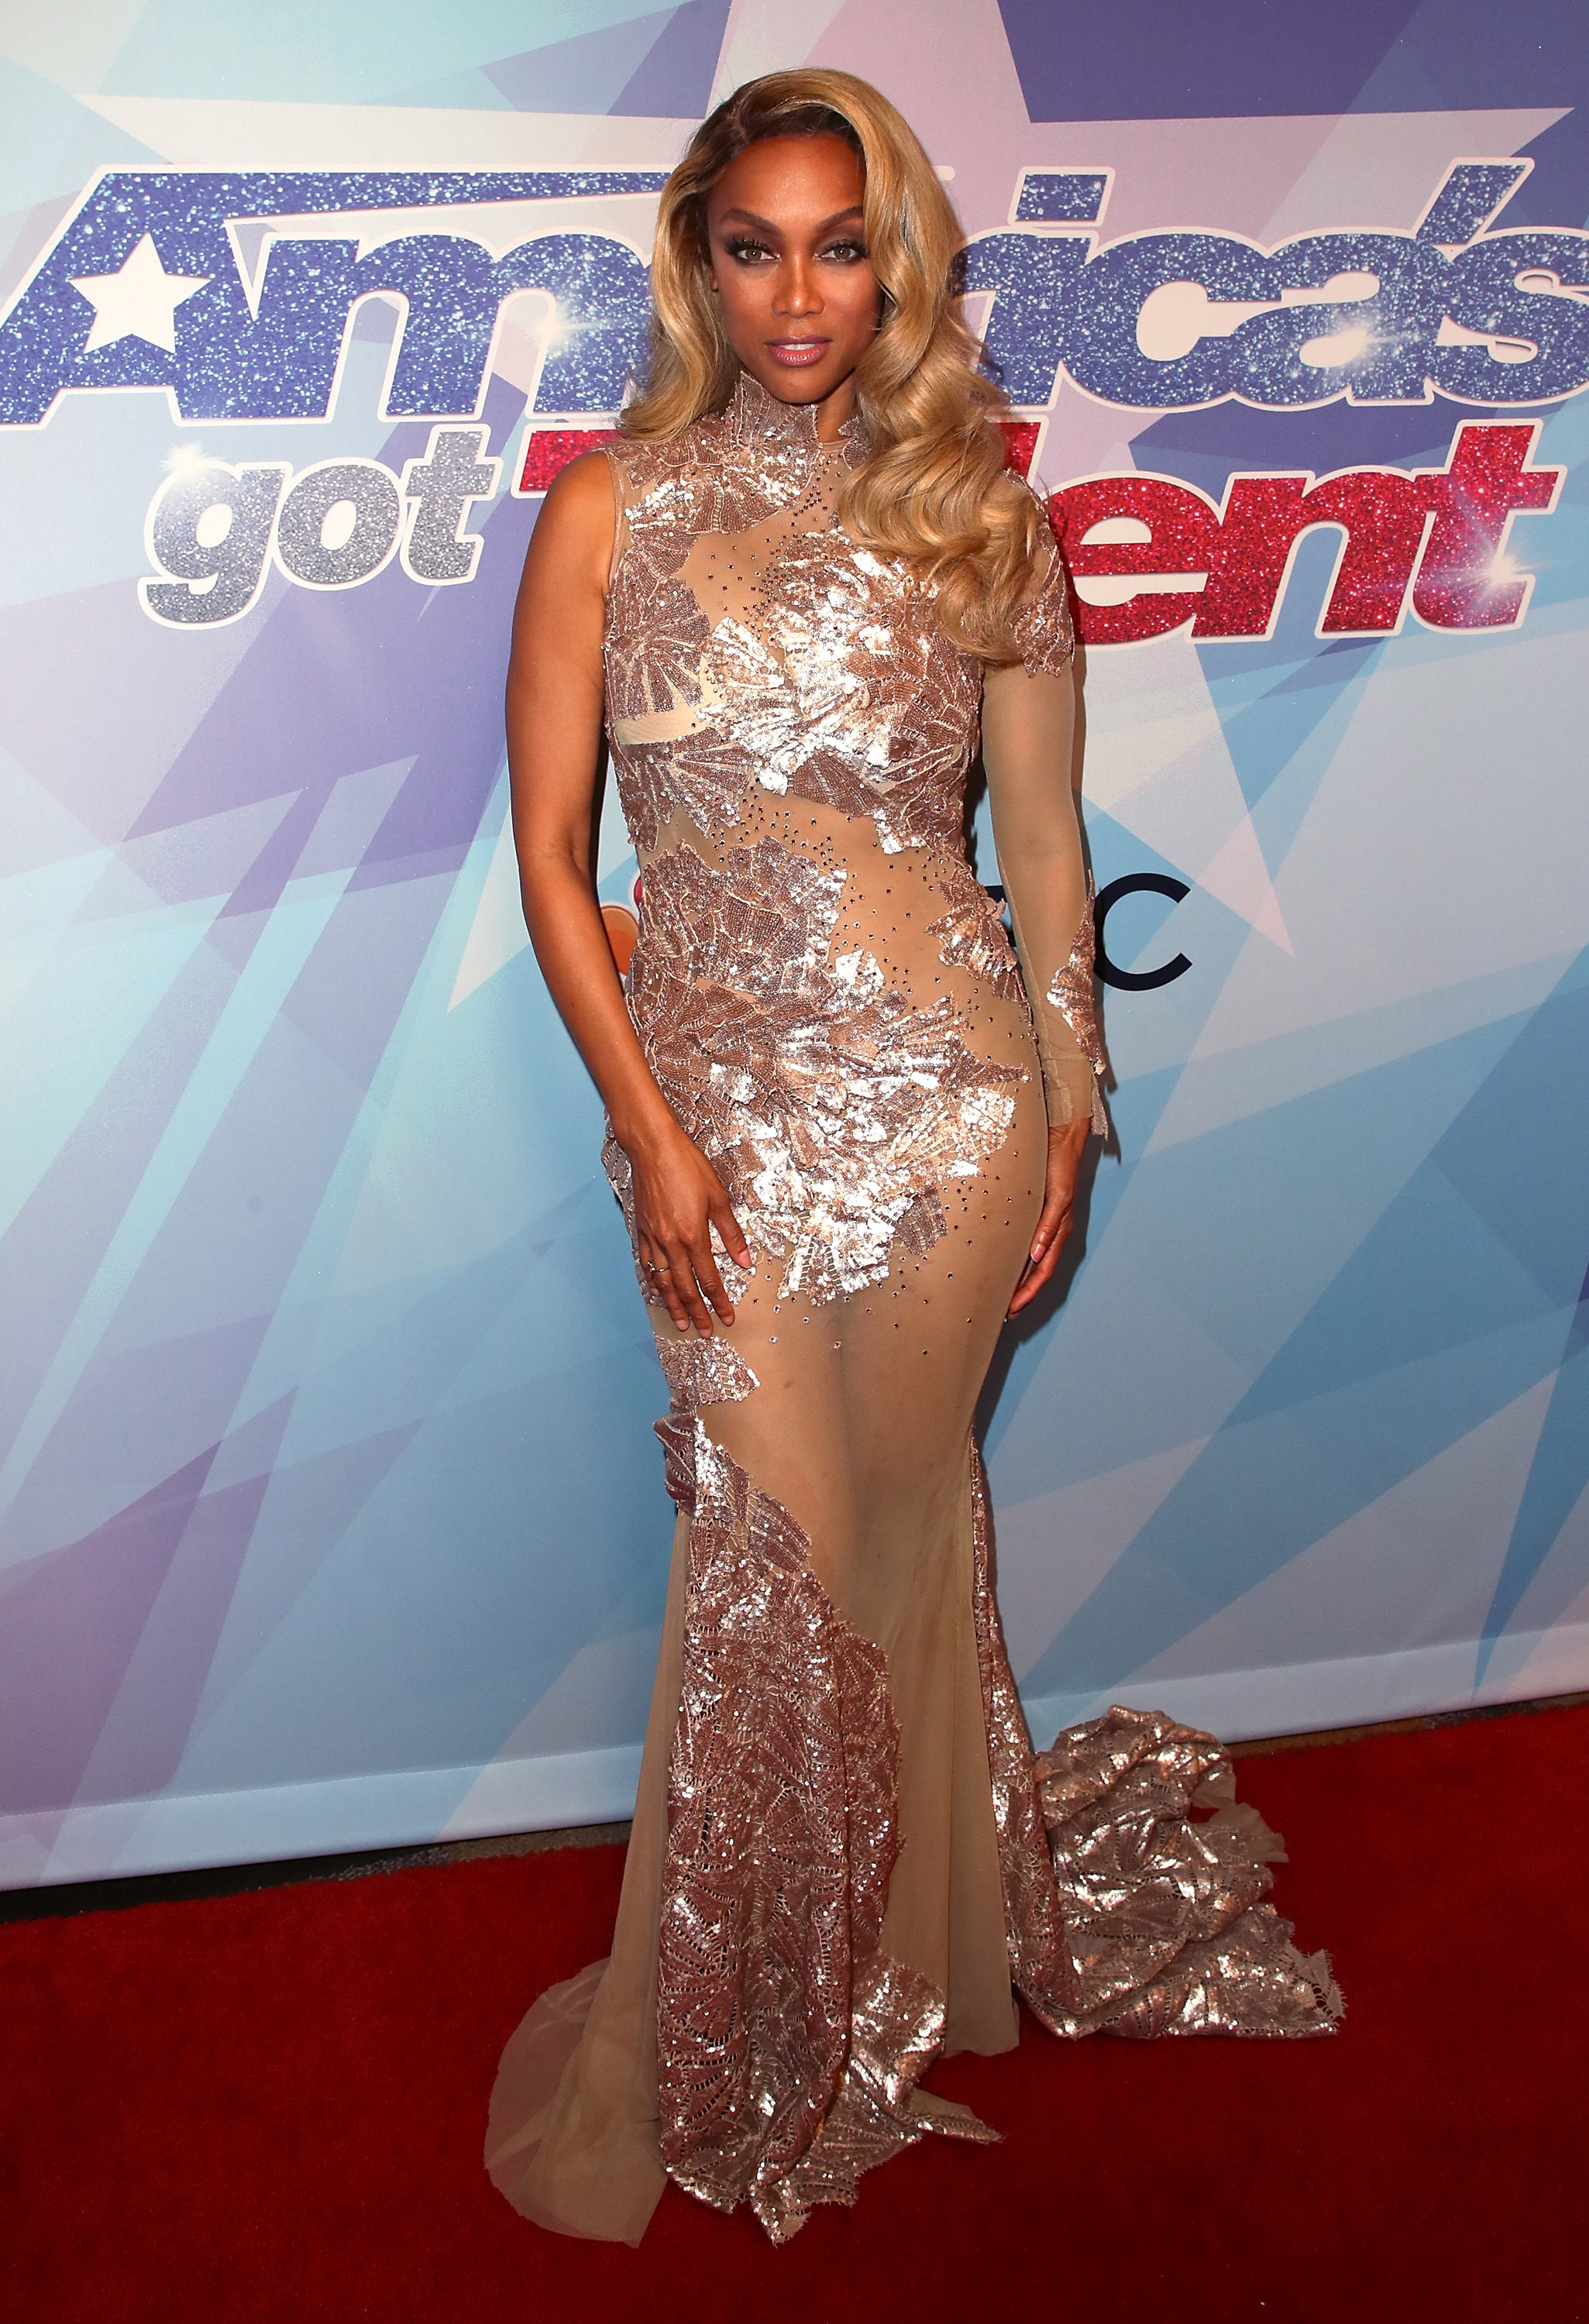 """Tyra Banks attends NBC's """"America's Got Talent"""" Season 12 live show at Dolby Theatre in Hollywood, Calif., on Sept. 12, 2017."""